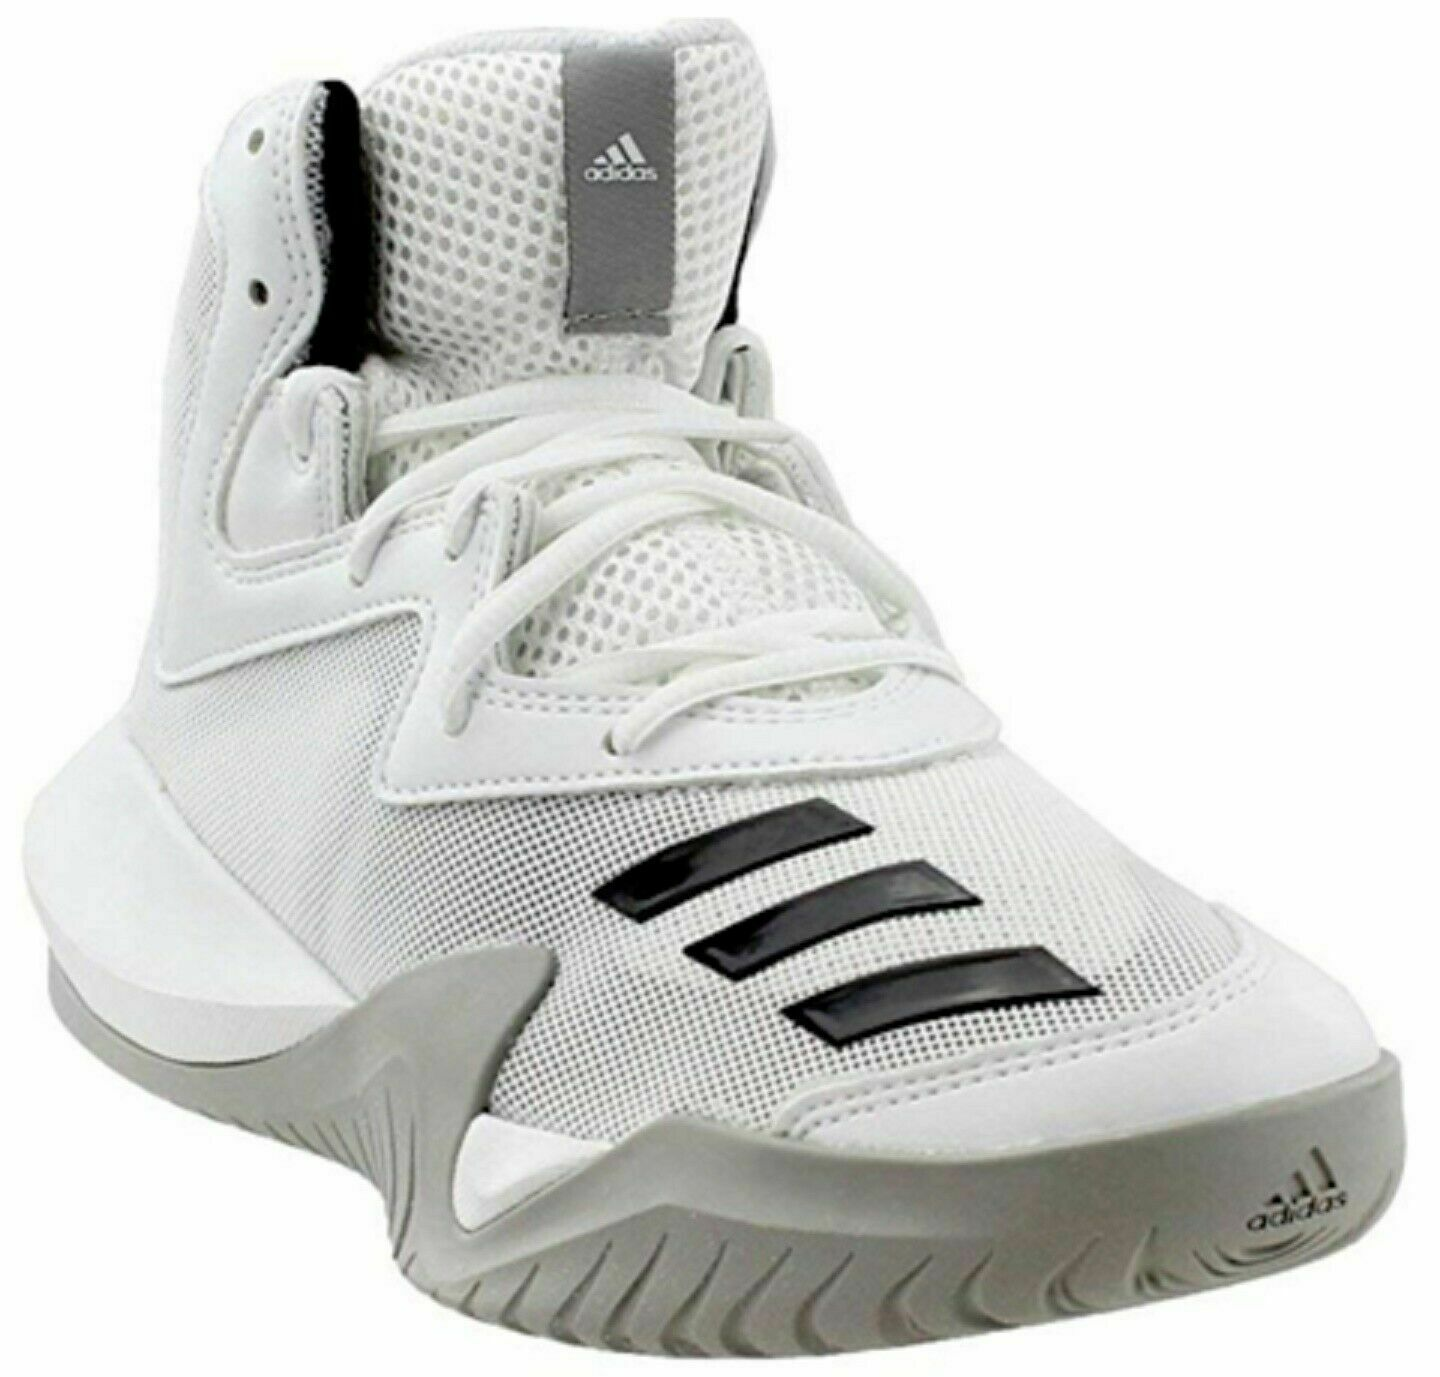 b86c735b2 Adidas Men BY3927 BY3927 BY3927 Crazy Team Hi Basketball shoes White Black  Size 9 1 2